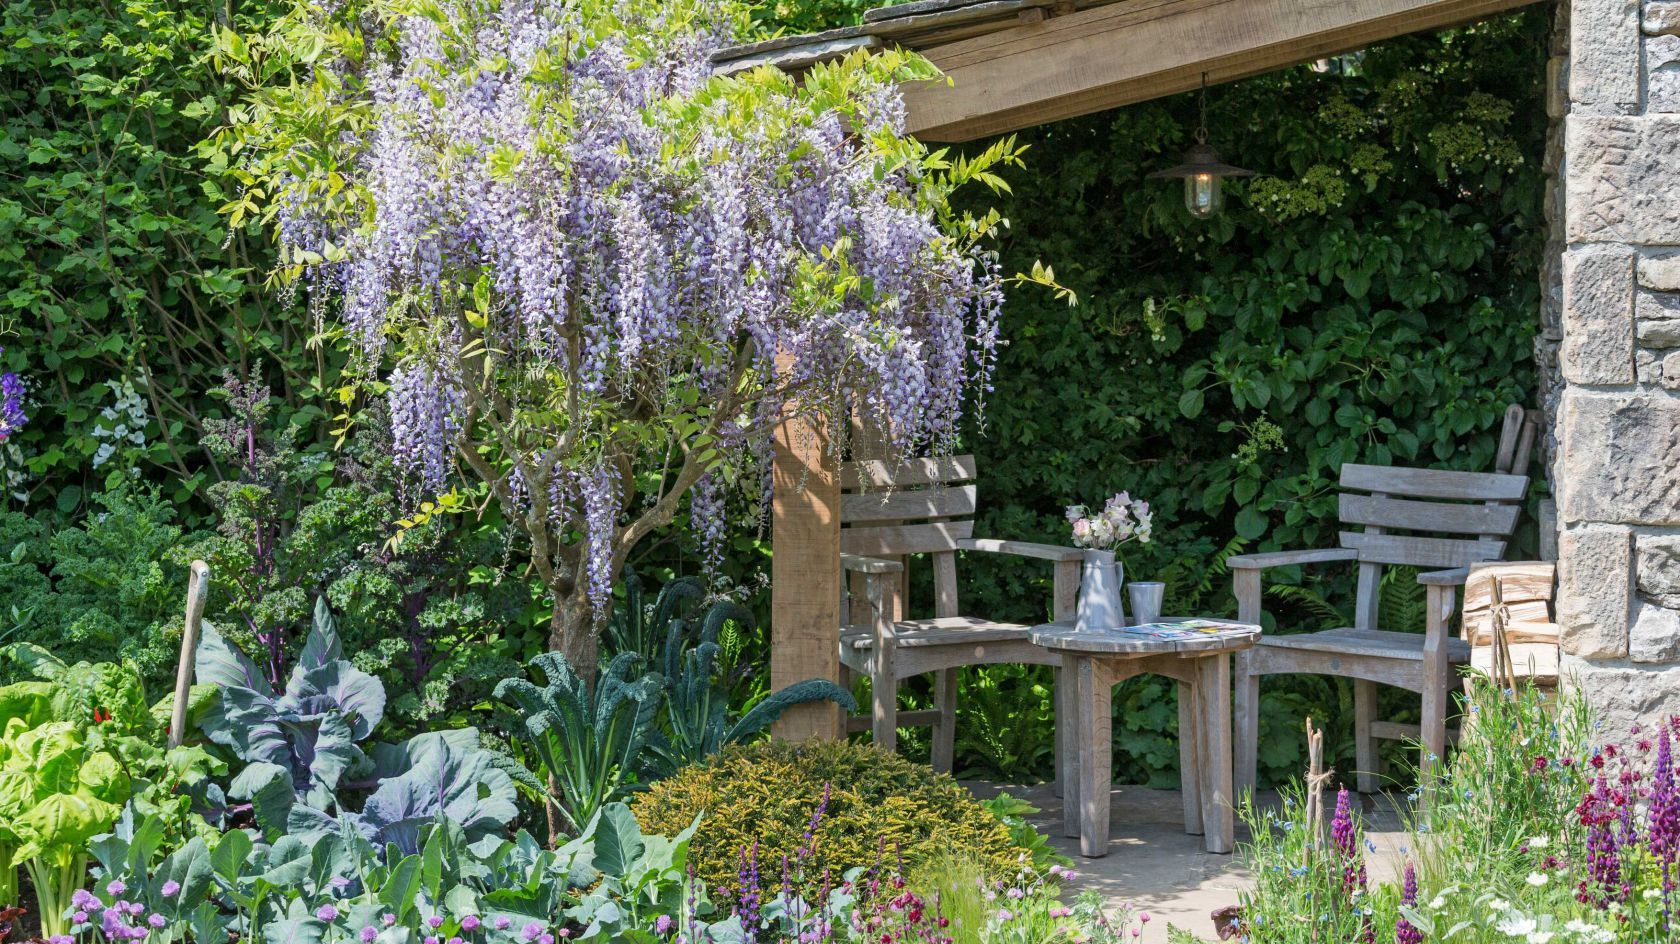 Chelsea Flower Show 2019 highlights the importance of